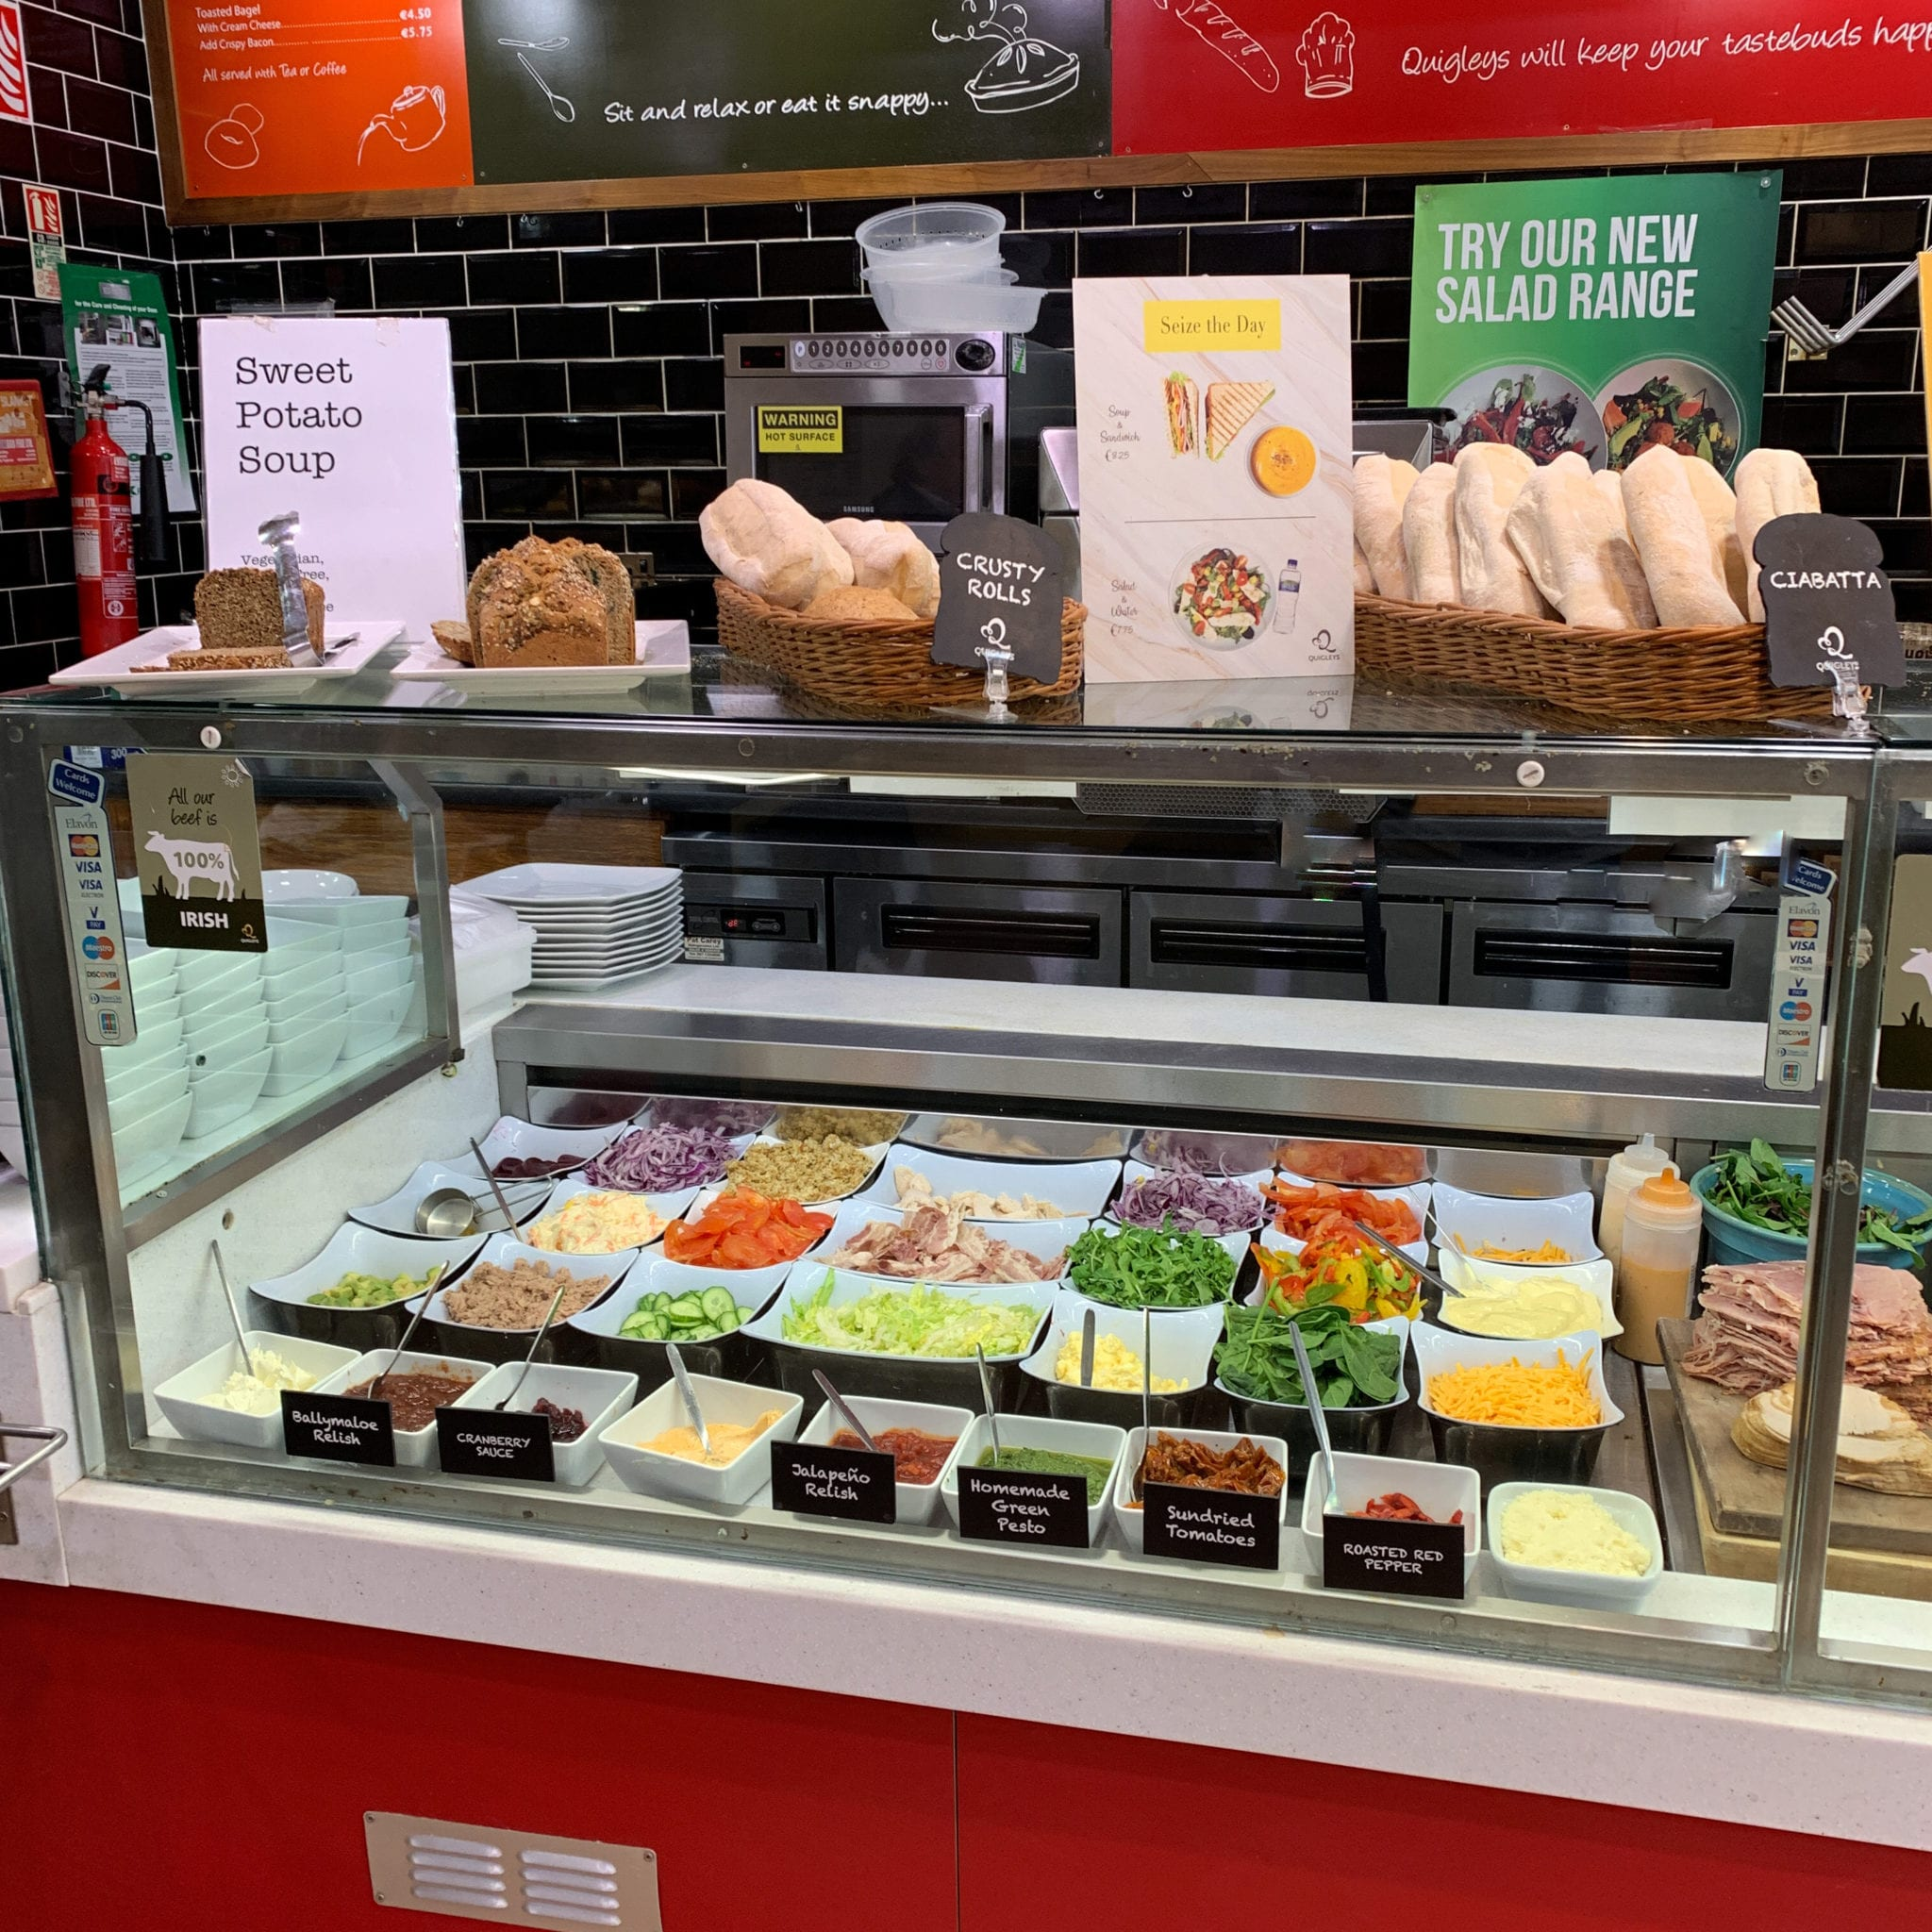 A choice of fillings available in Quigleys Thurles including salads, cheese and meat options